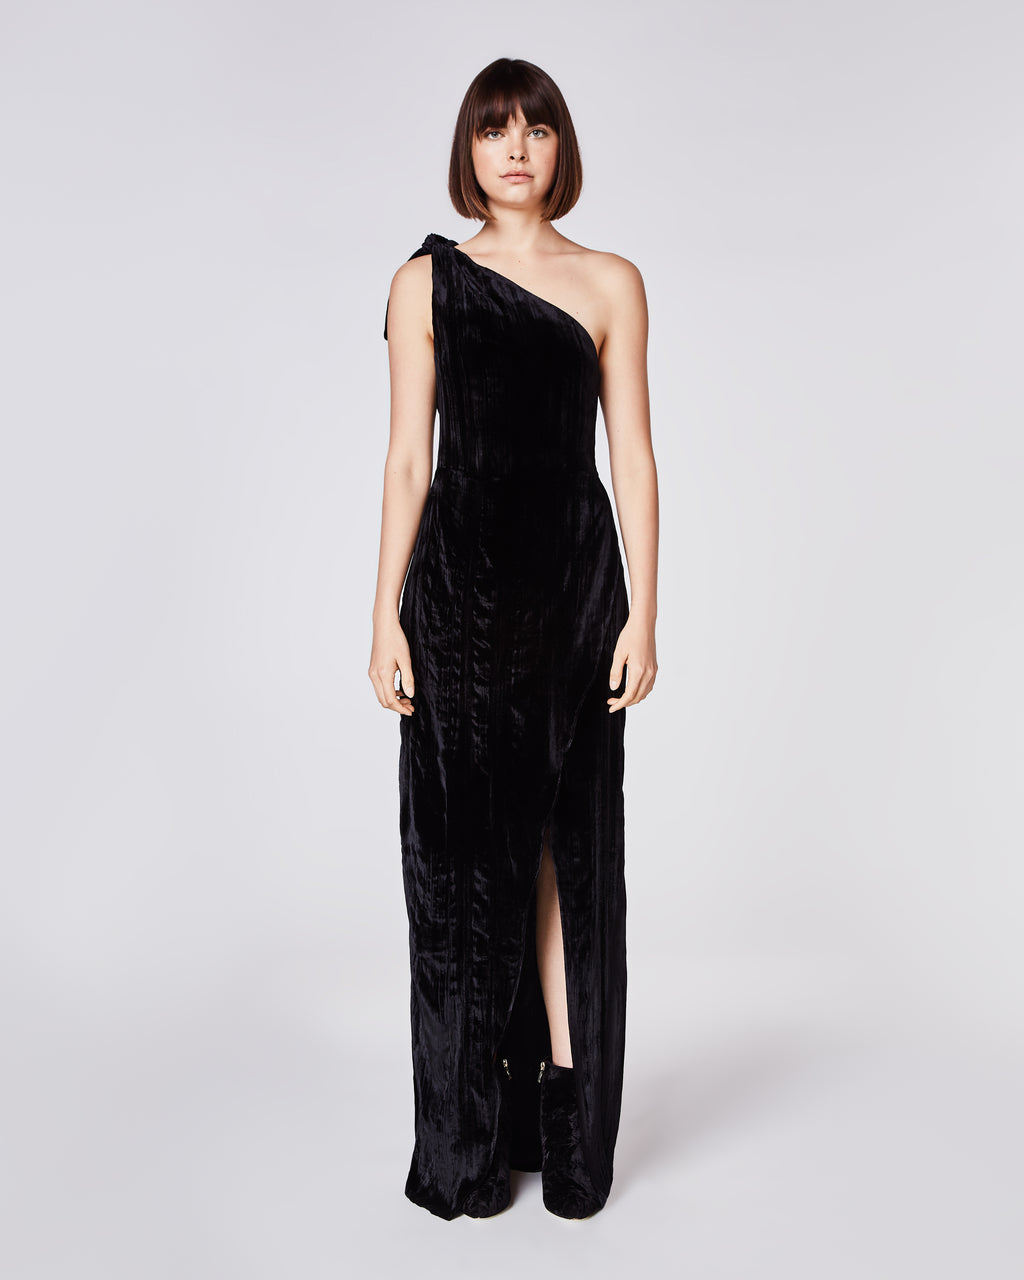 CF10244 - CRINKLED VELVET DRESS With slit - dresses - long - We're mixing elegant with sass. This velvet gown boasts both a one-shoulder tie and sexy leg slit. Partially lined. Final Sale